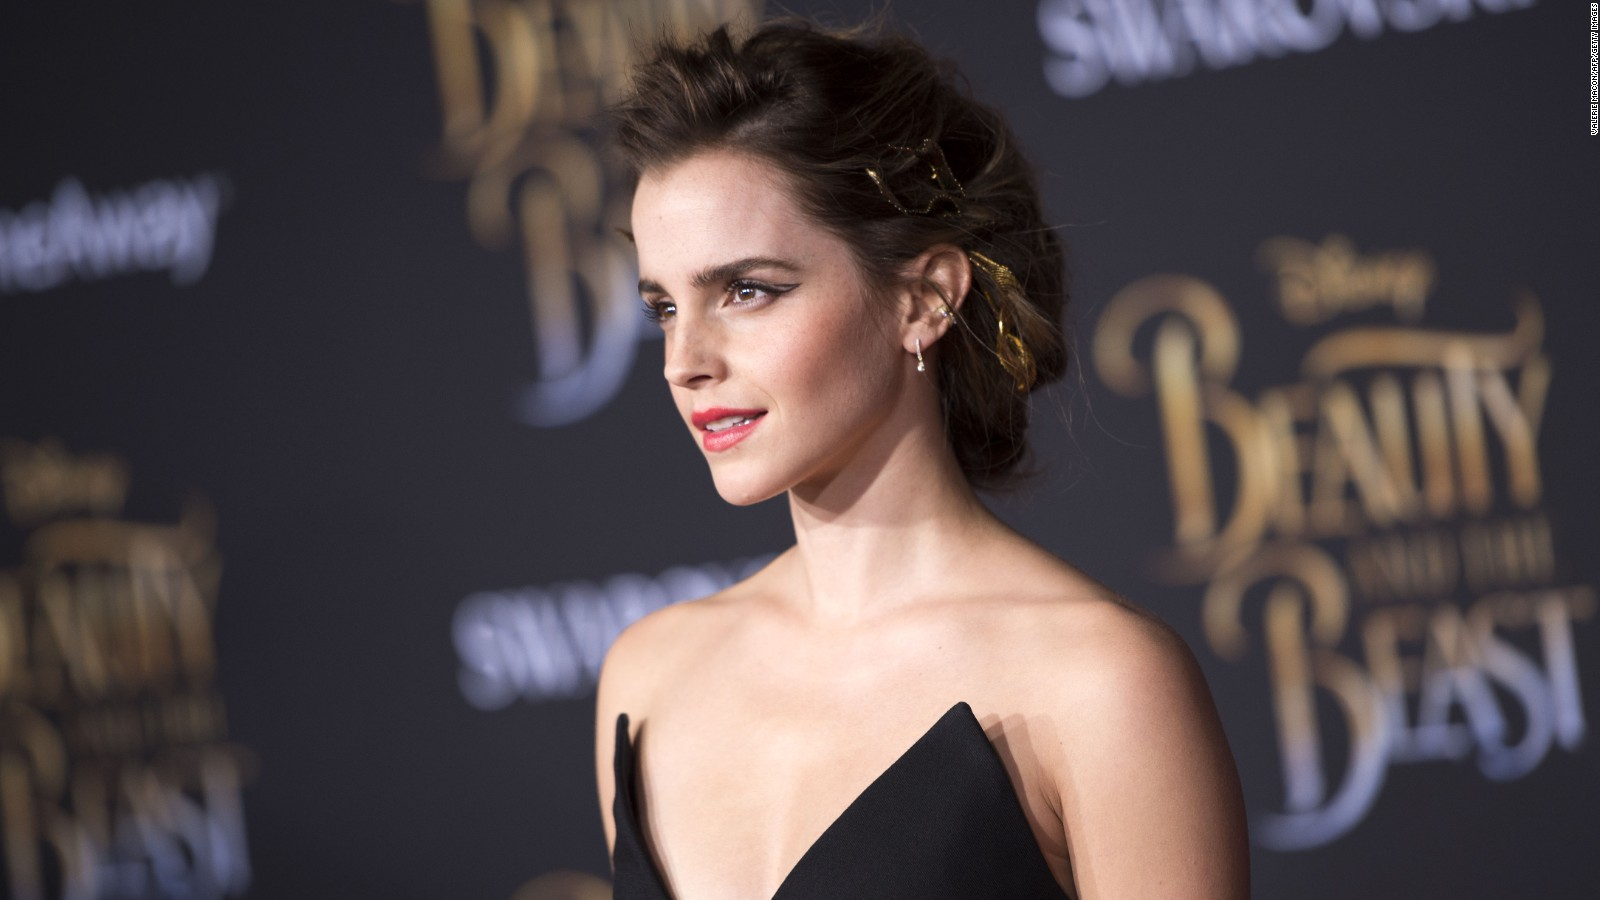 emma watson's revealing vanity fair photo: feminism or hypocrisy? - cnn